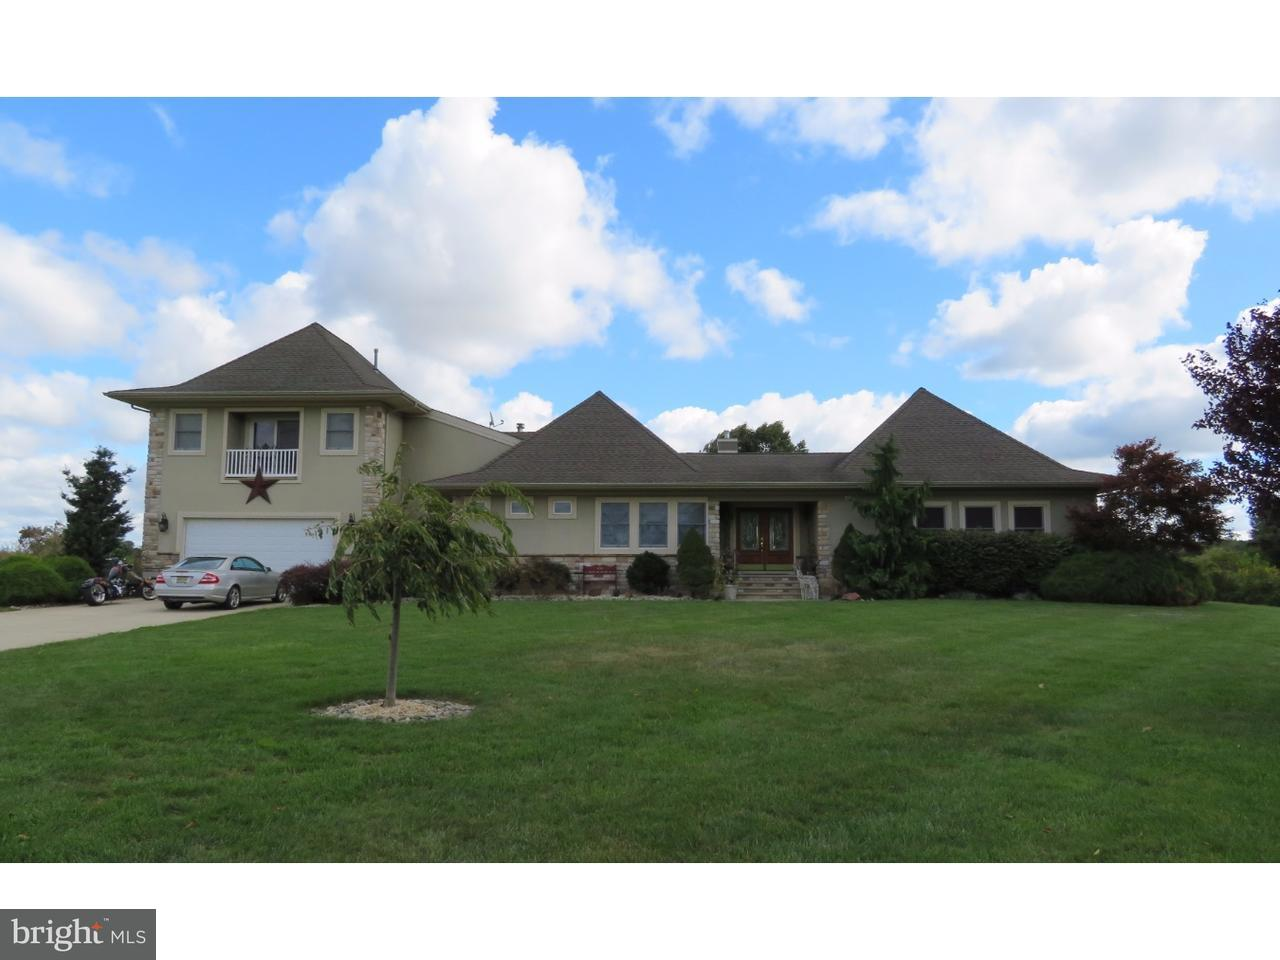 Single Family Home for Sale at 261 SYKESVILLE Road Chesterfield, New Jersey 08515 United StatesMunicipality: Chesterfield Township